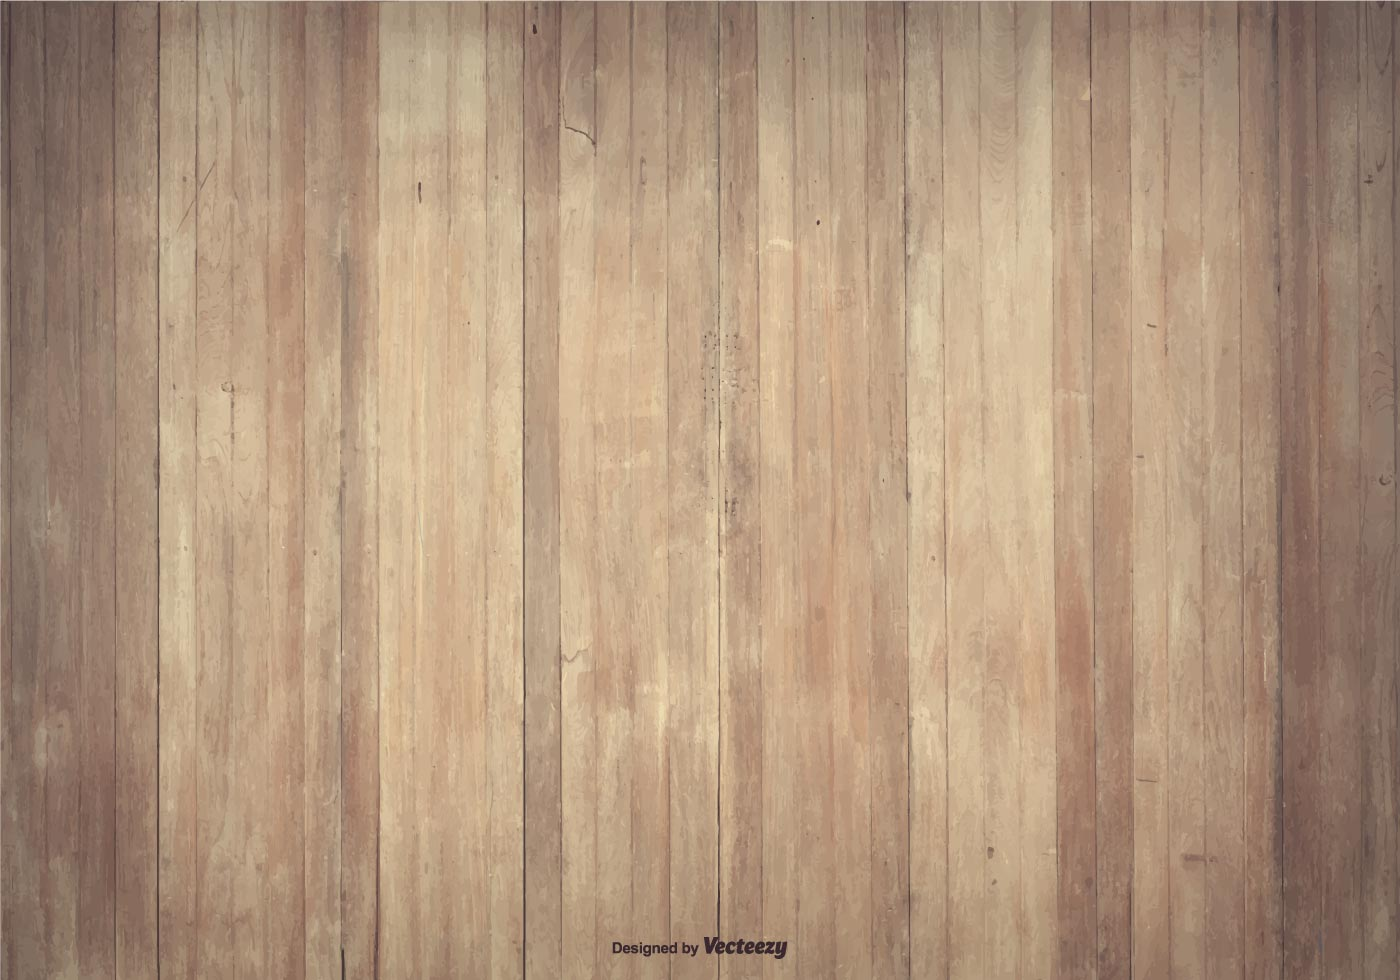 Old Wood Planks Background - Download Free Vector Art ...